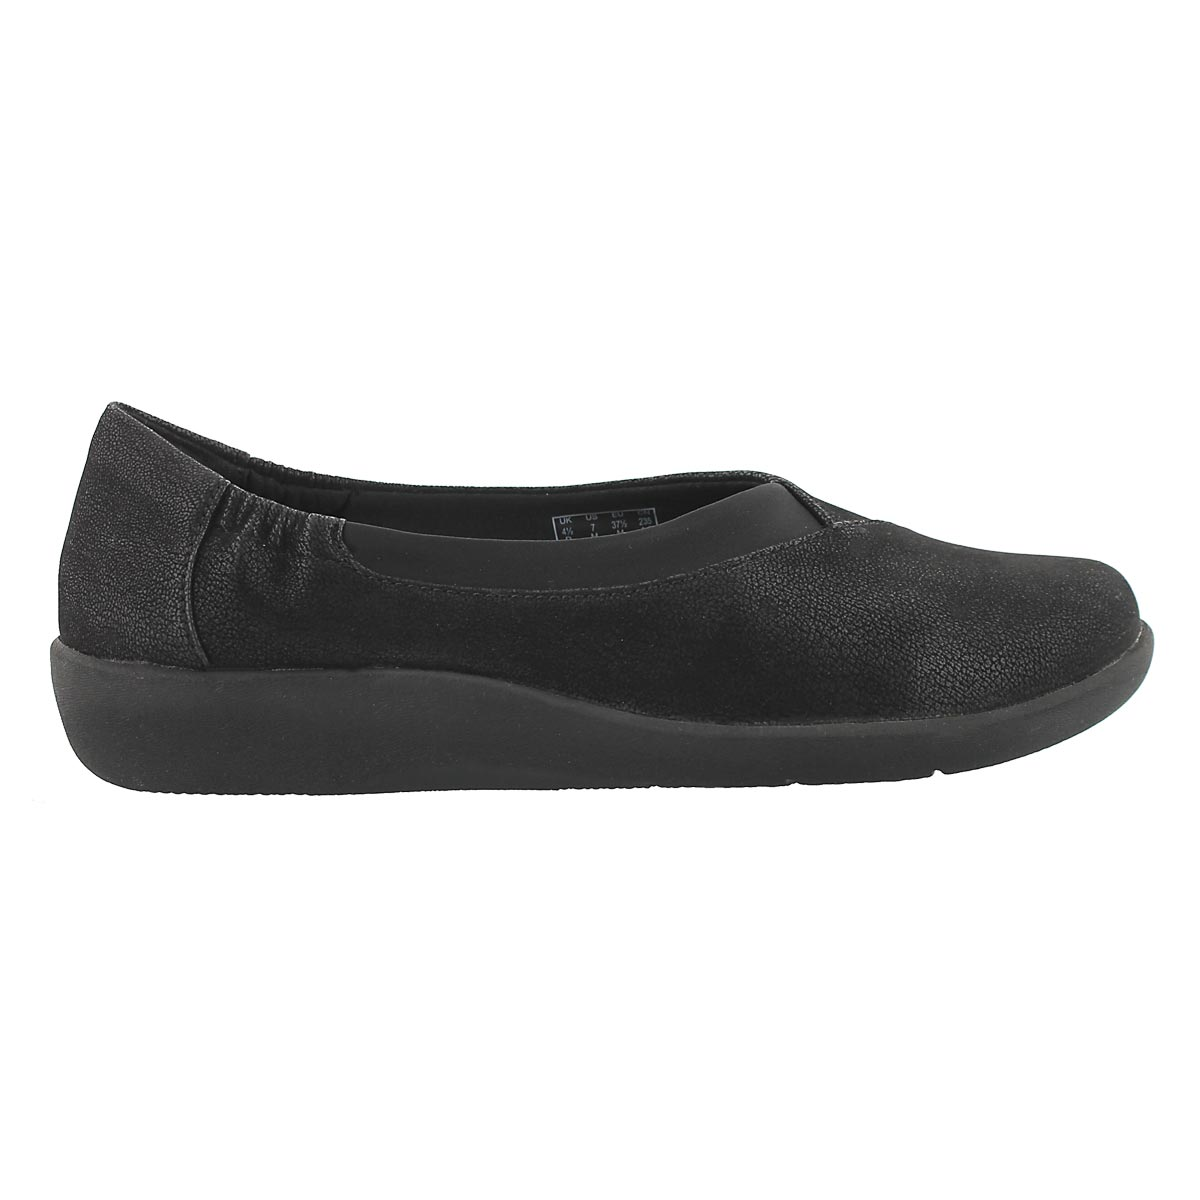 Lds Sillian Jetay black casual slip on